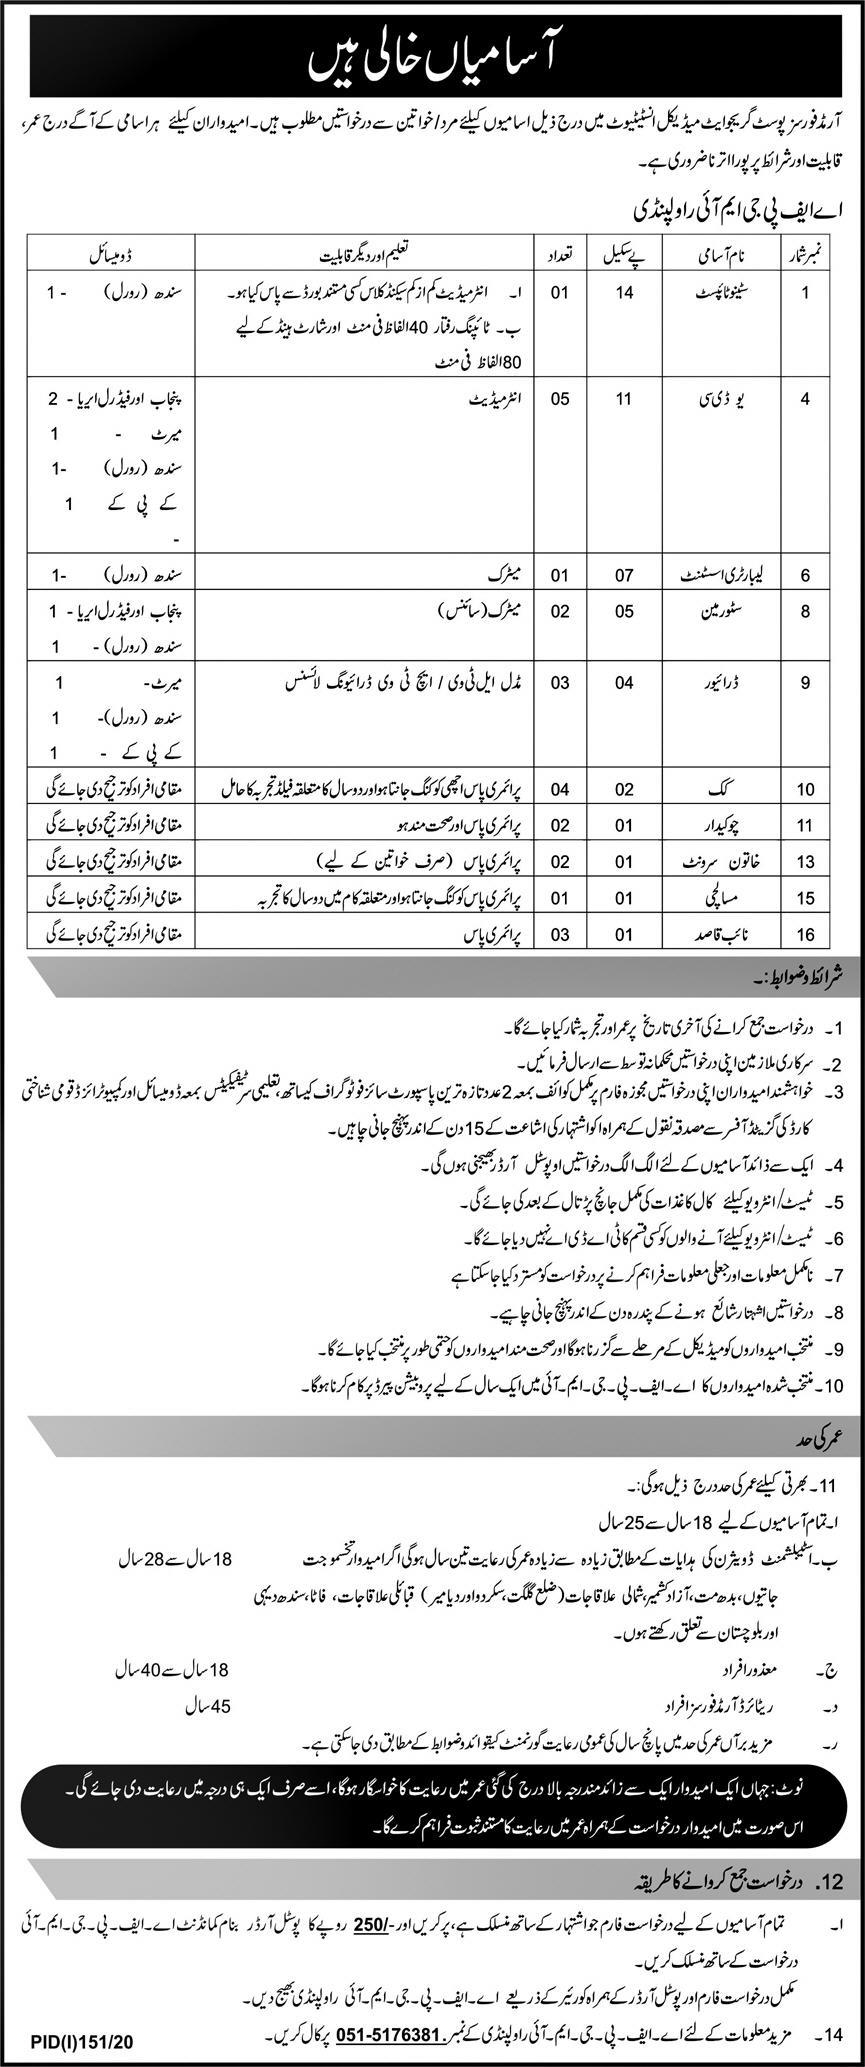 Armed Forces Post Graduate Medical Institute Jobs 2020